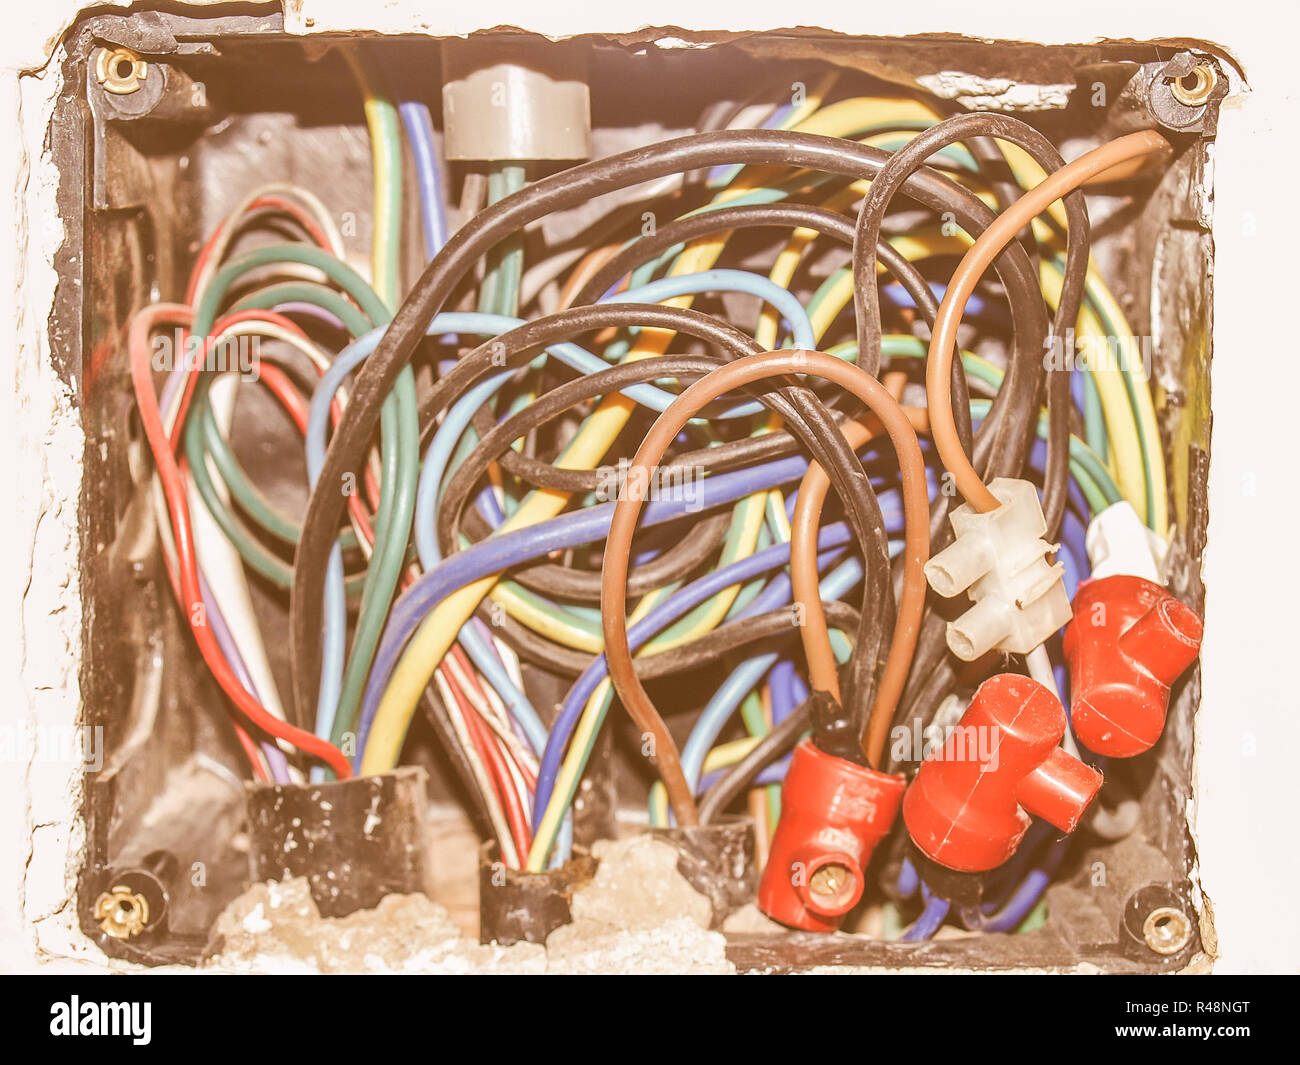 Junction Box Wiring Stock Photos Images Openreach Vintage Image